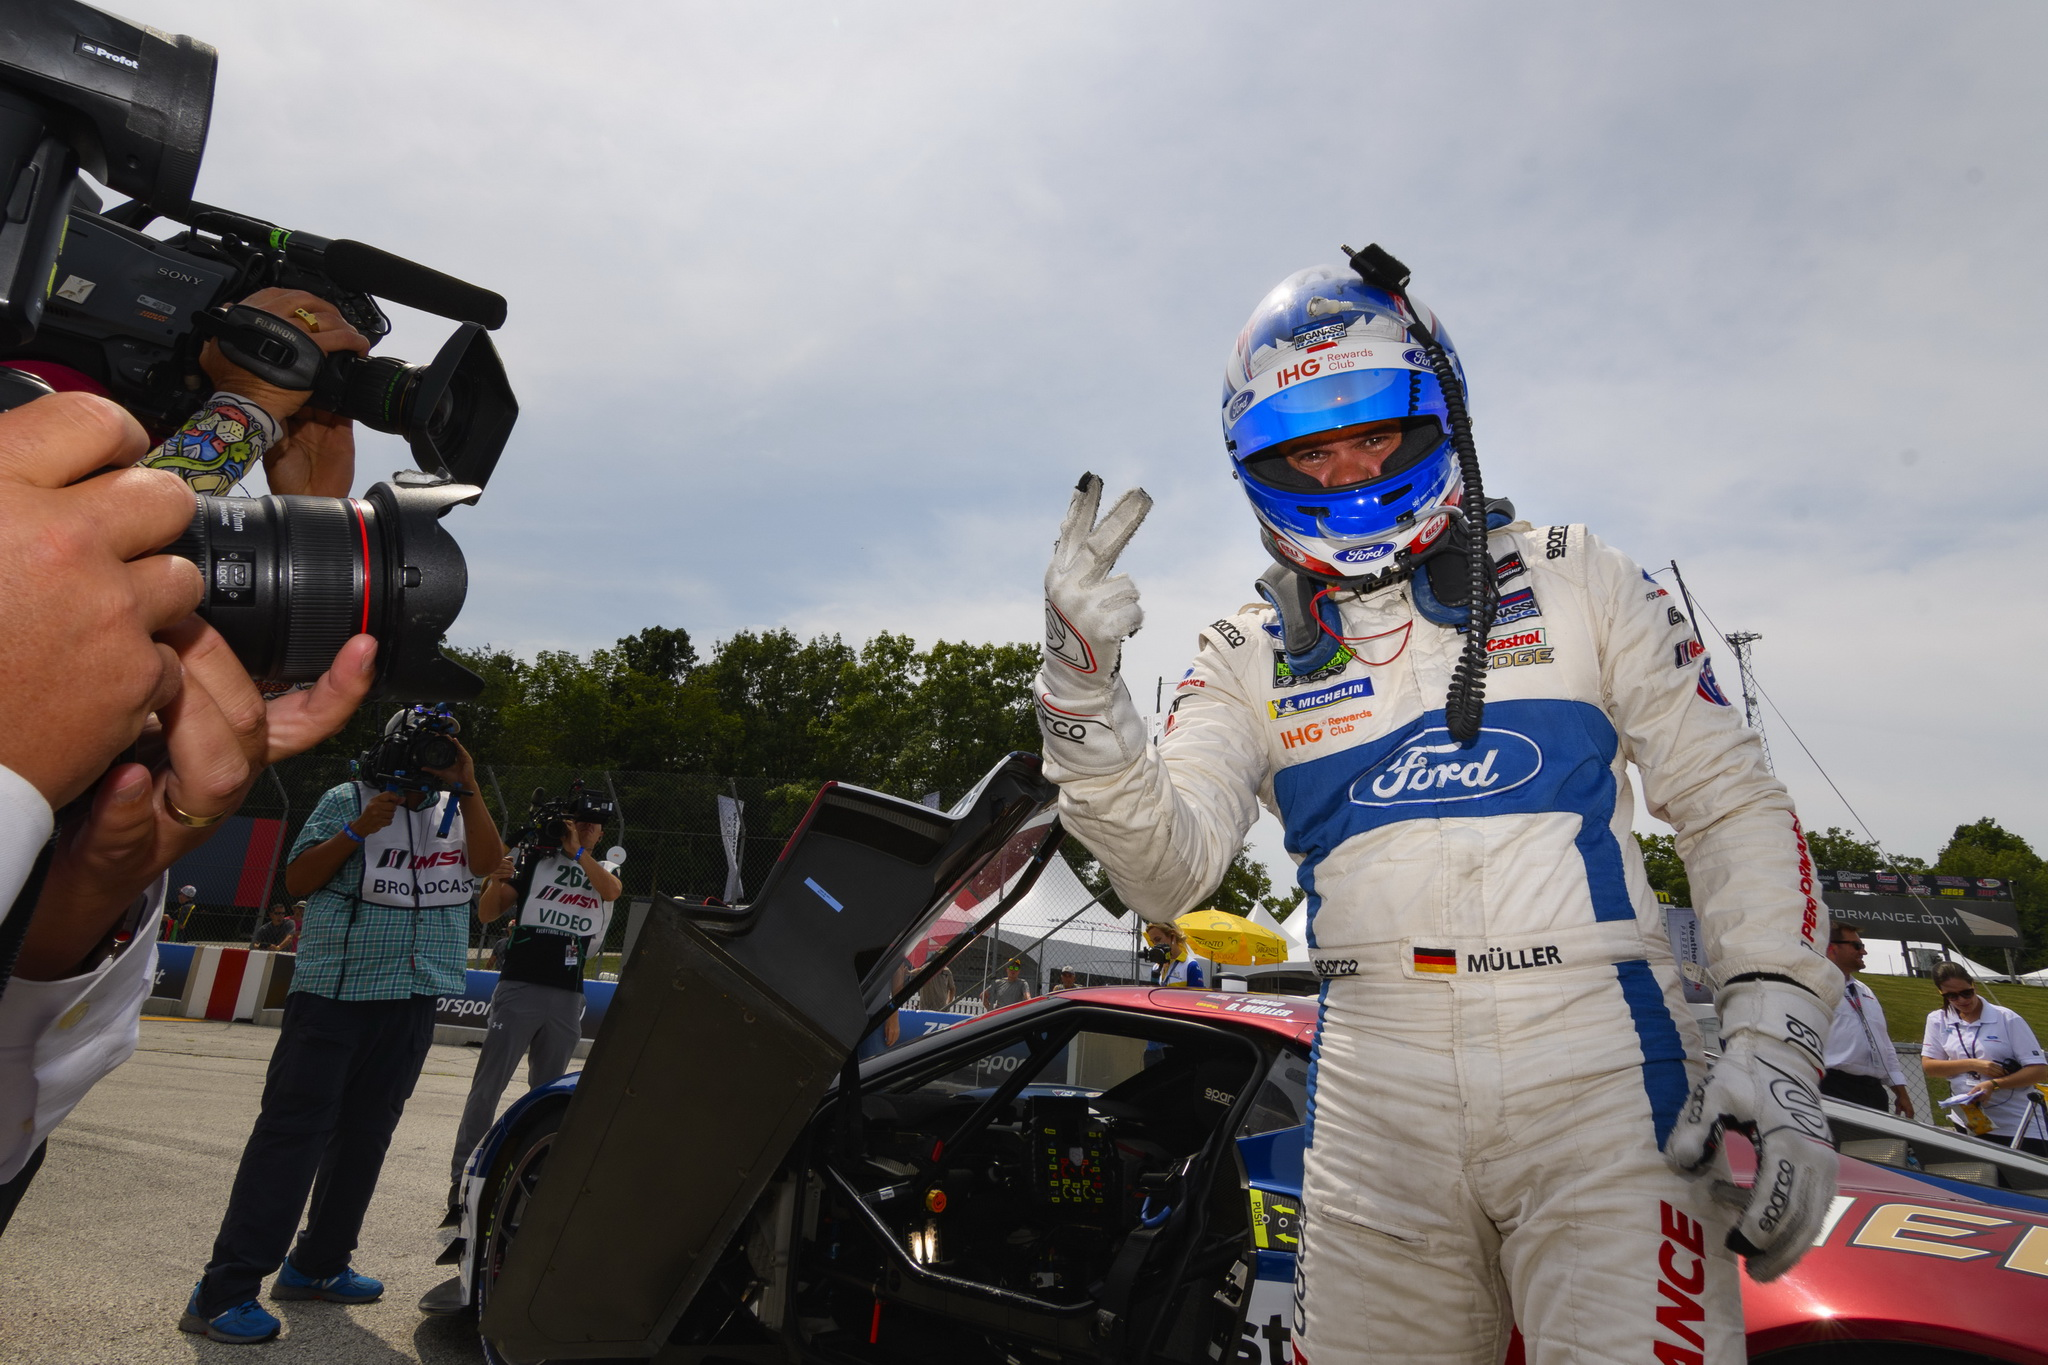 Ford Chip Ganassi Racing Earned Front-Row Lockout as Dirk Müller Qualified on Pole Once Again at Road America